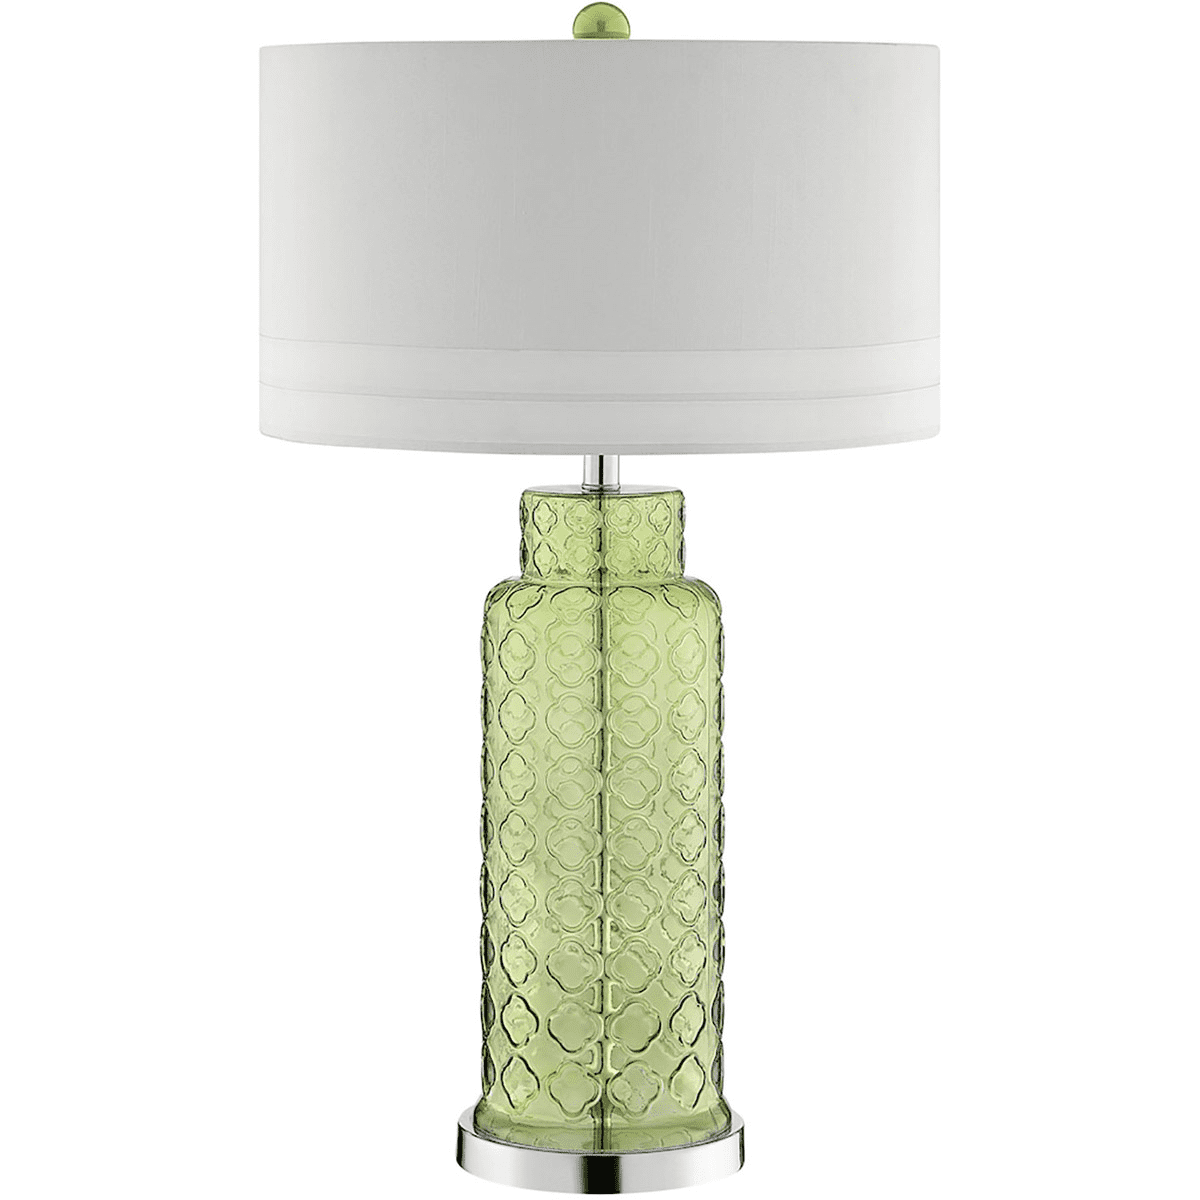 Table lamps 1 light fixtures with green finish glass steel material a 15 bulb 18 inch wide 100 watts